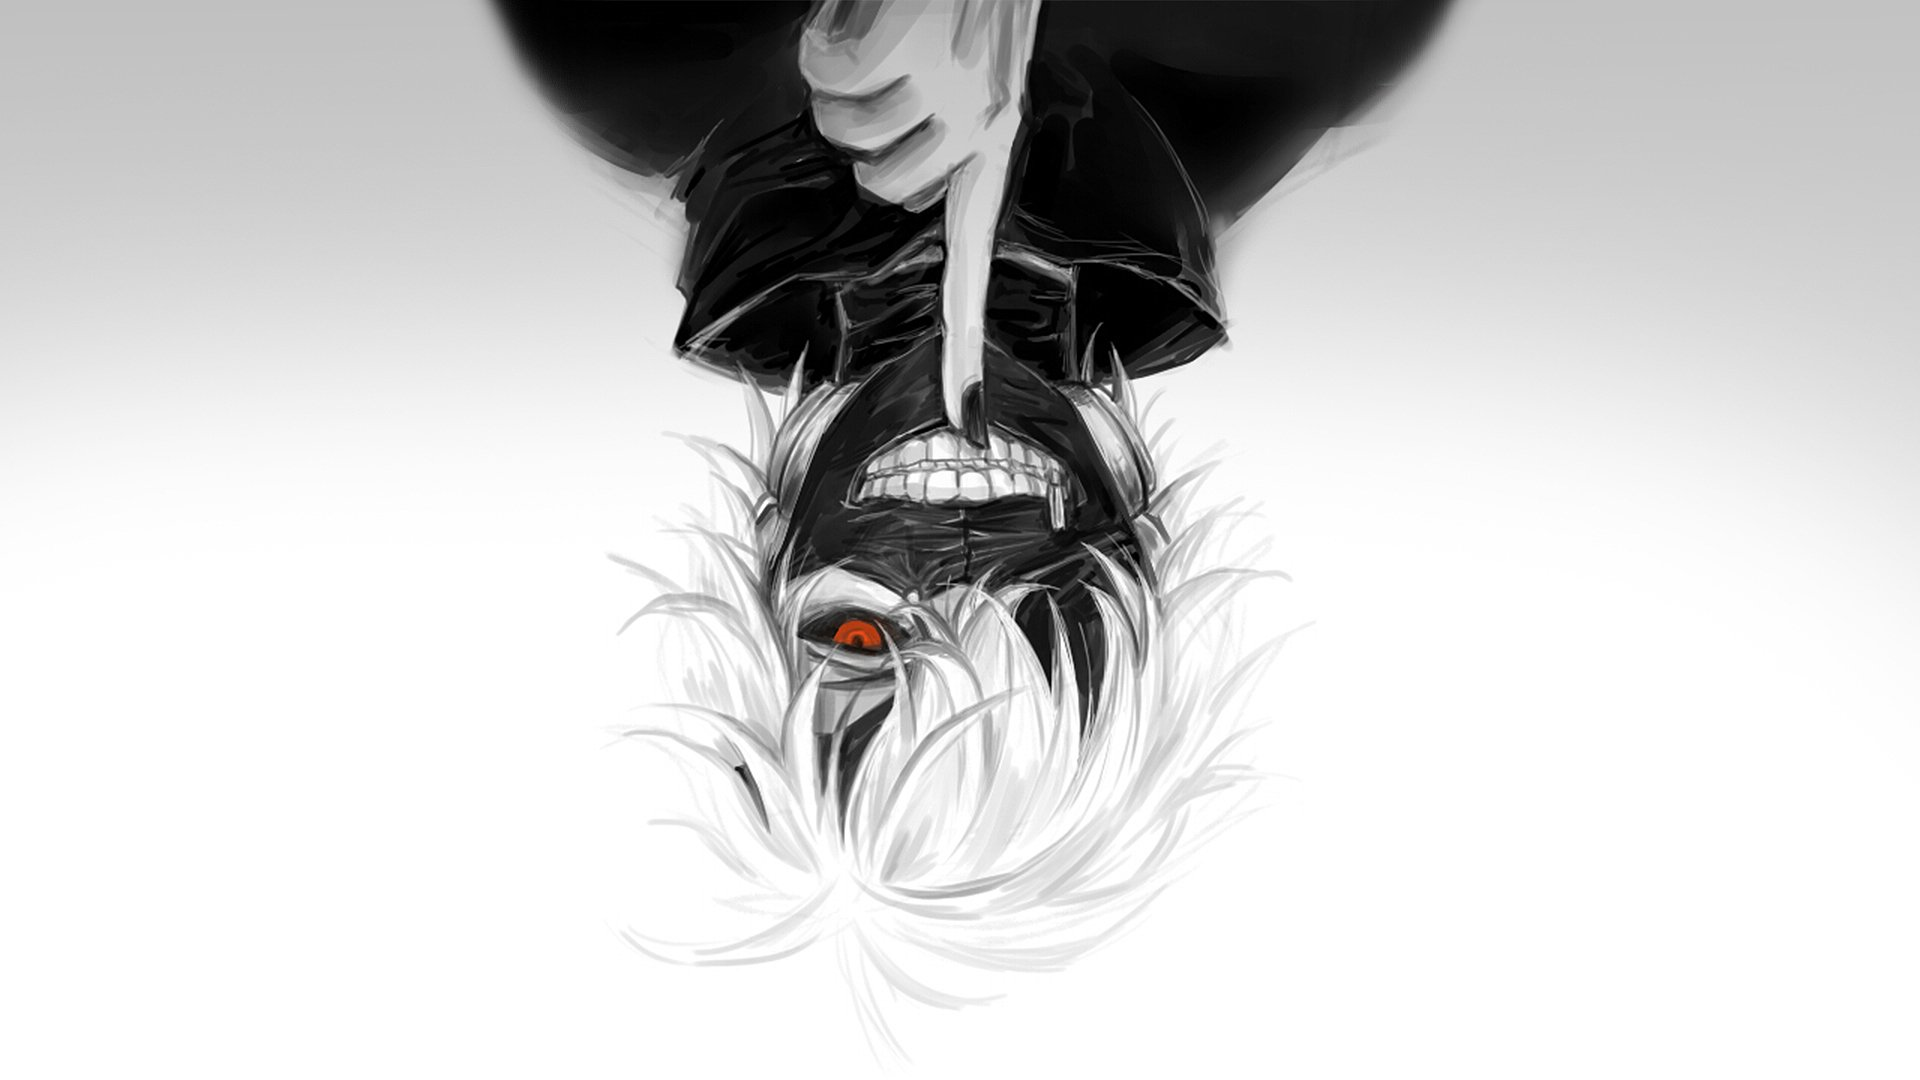 tokyo ghoul clipart 1920x1080 20 free Cliparts | Download